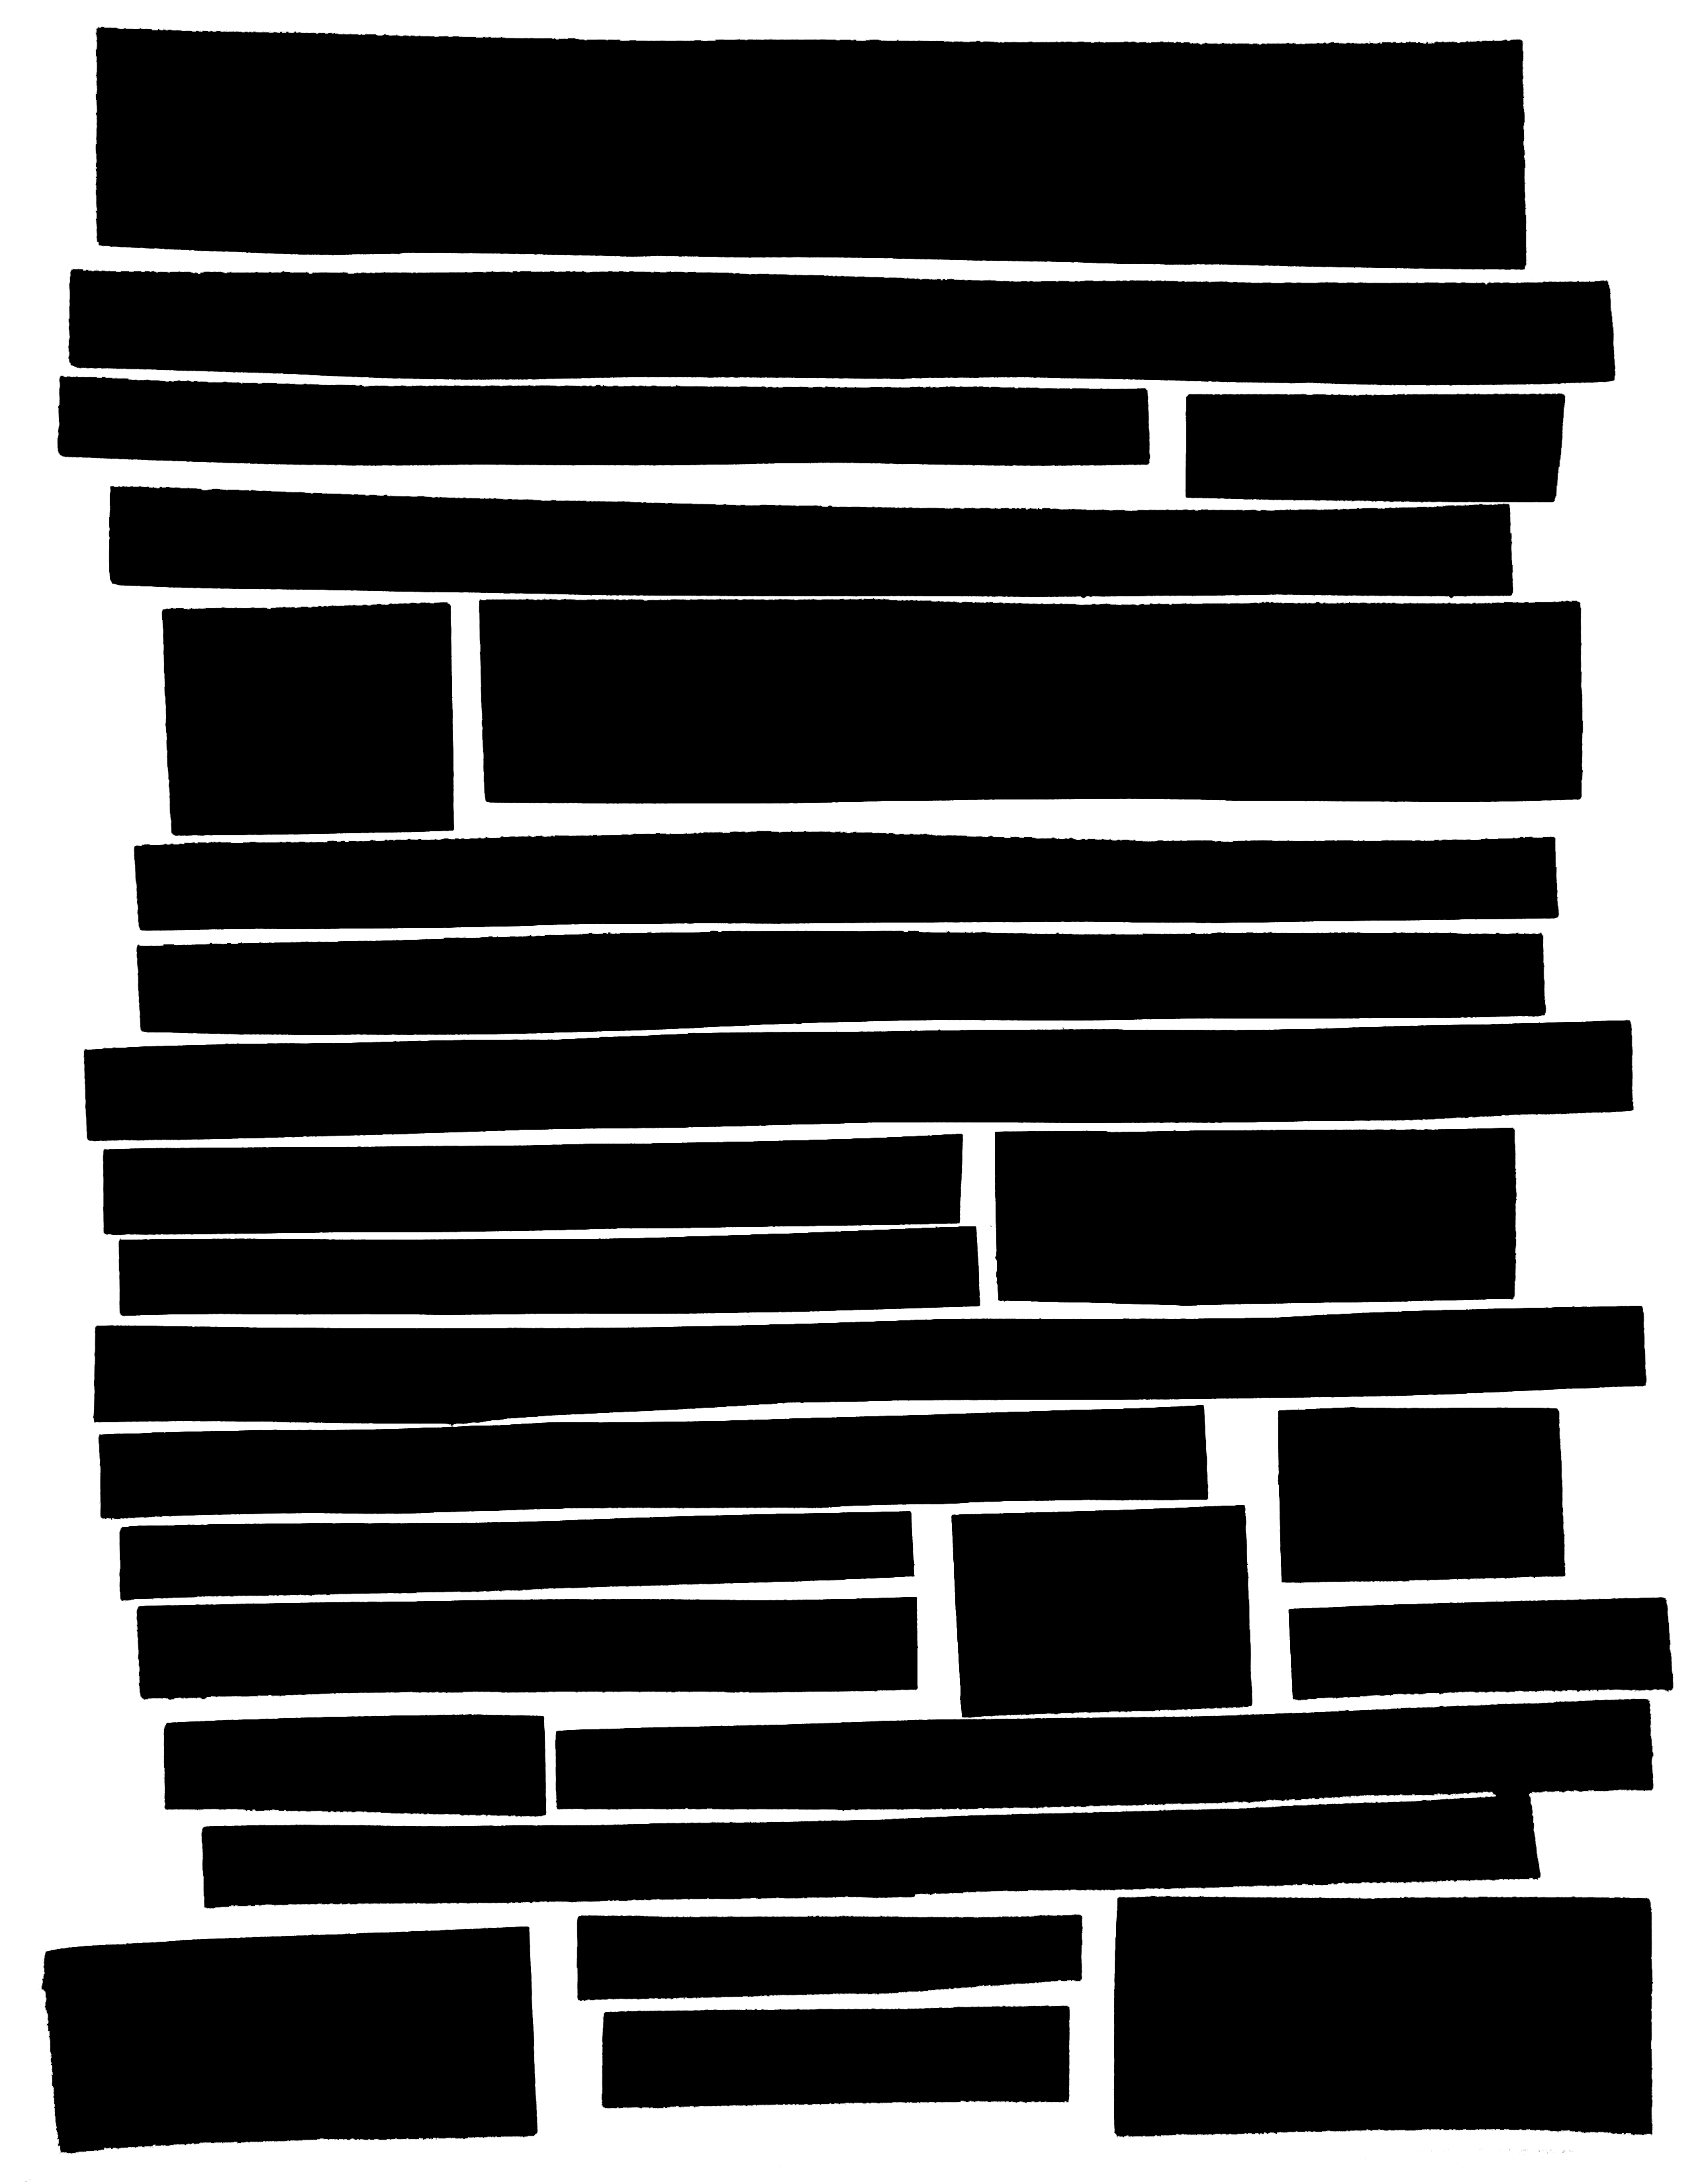 100618_Hall_Redacted Big.png